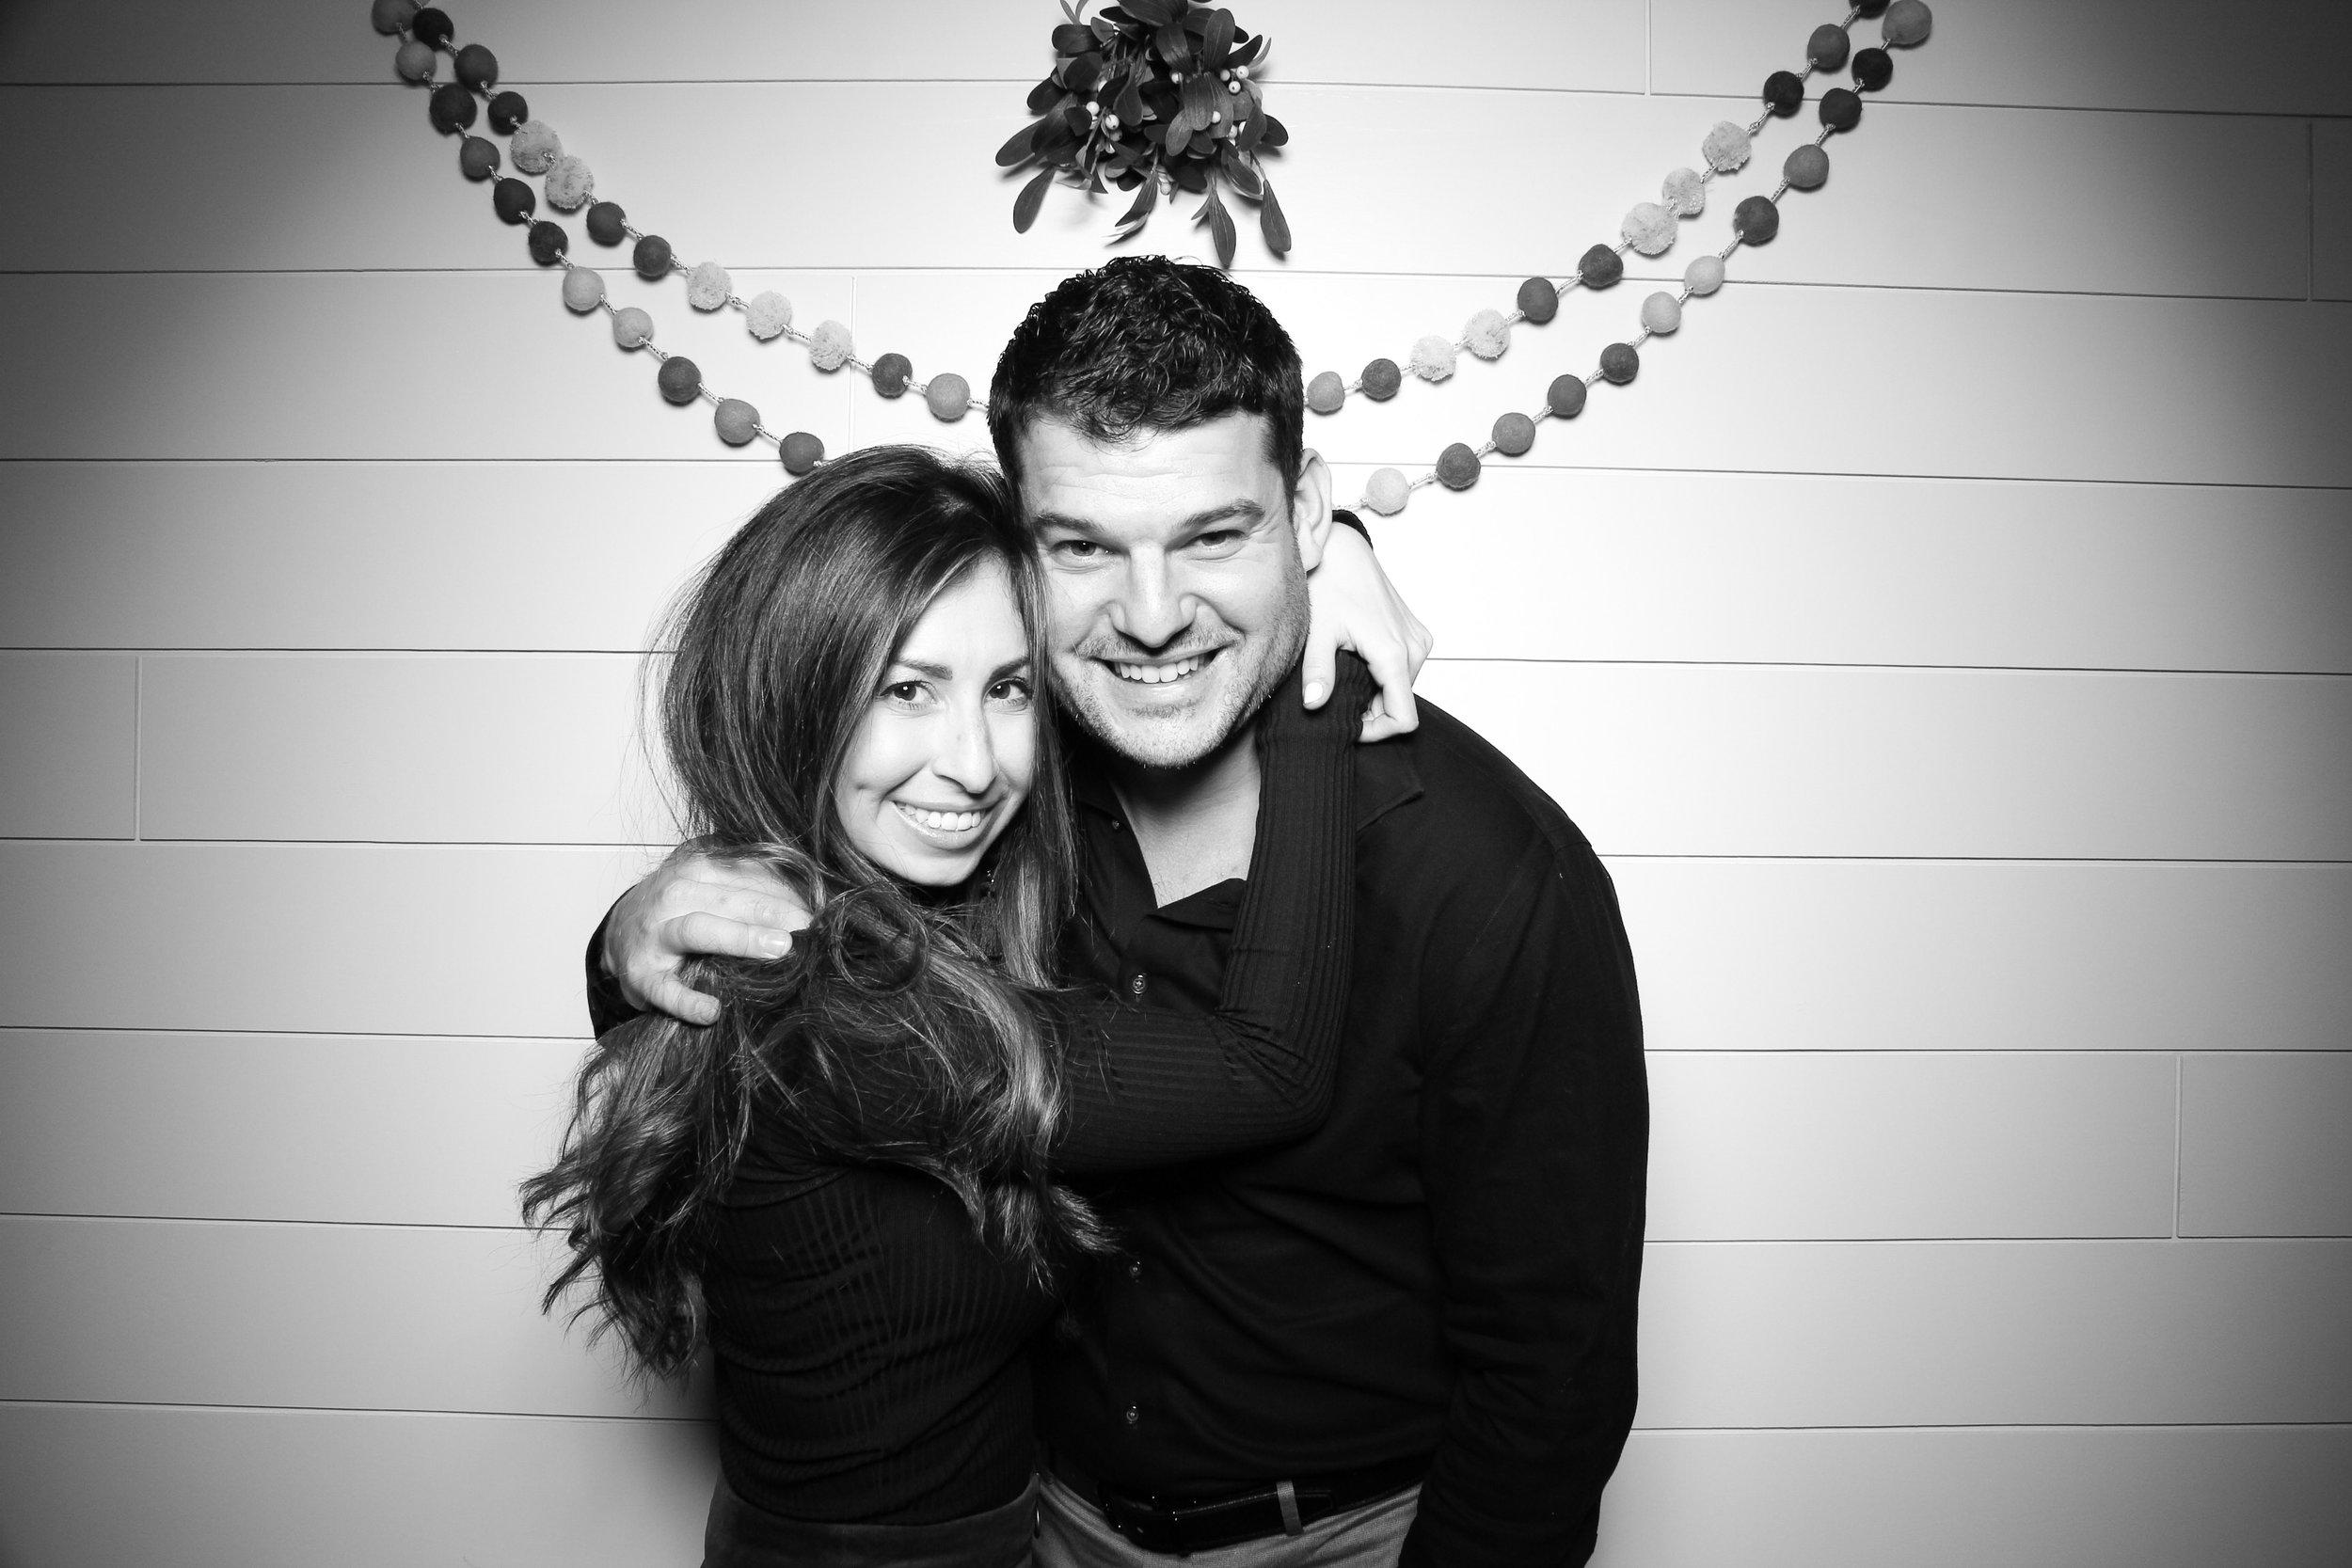 Chicago_Vintage_Photobooth_Christmas_Holiday_Party_17.jpg